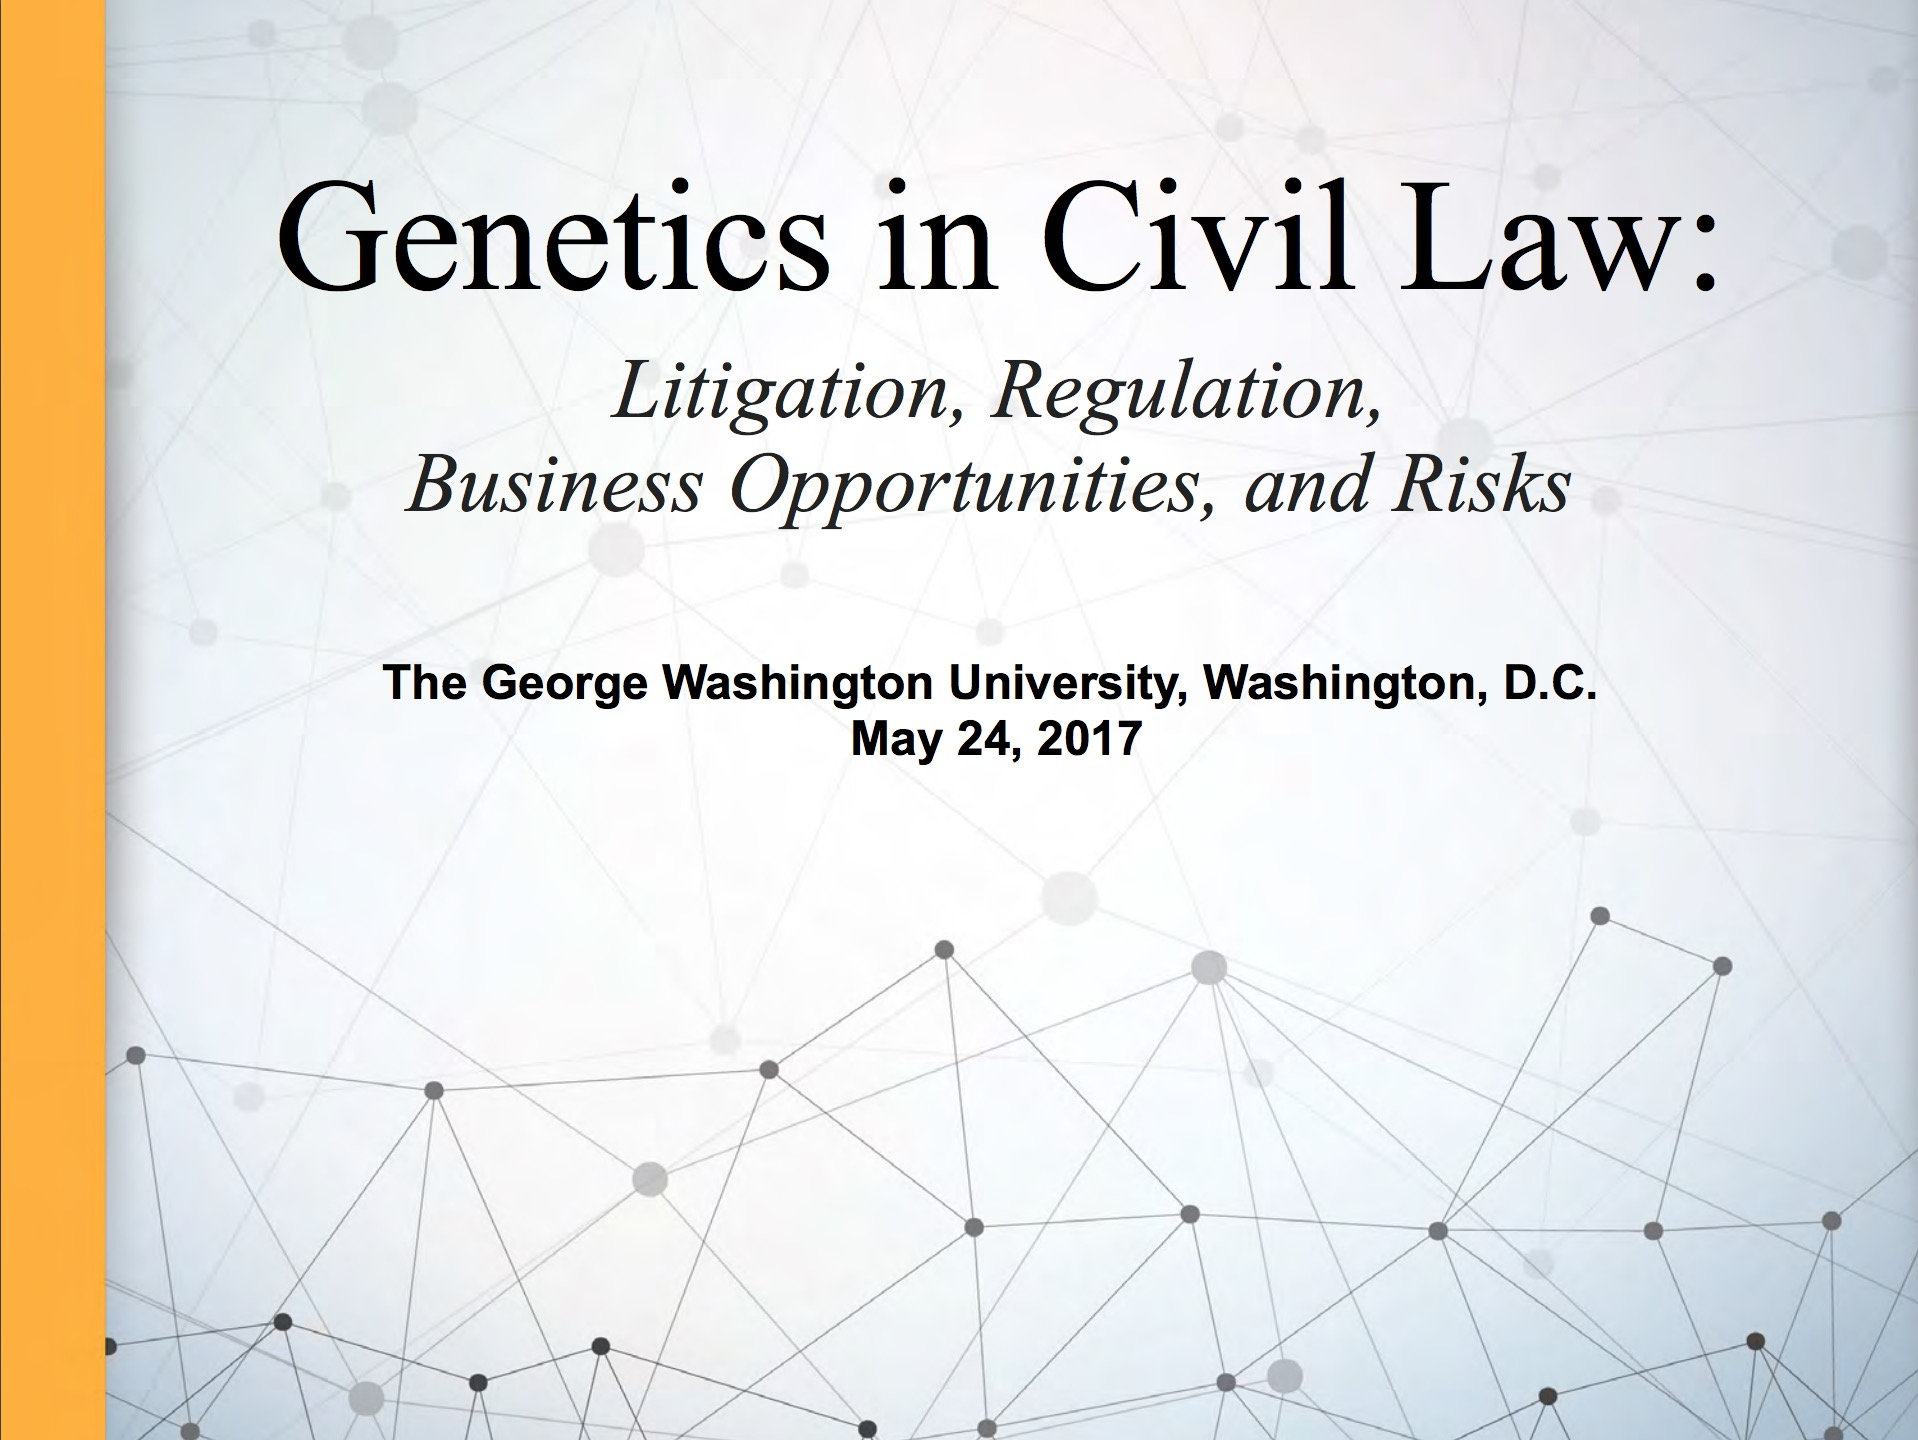 genetics-dna-civil-litigation-conference-workshop.jpg